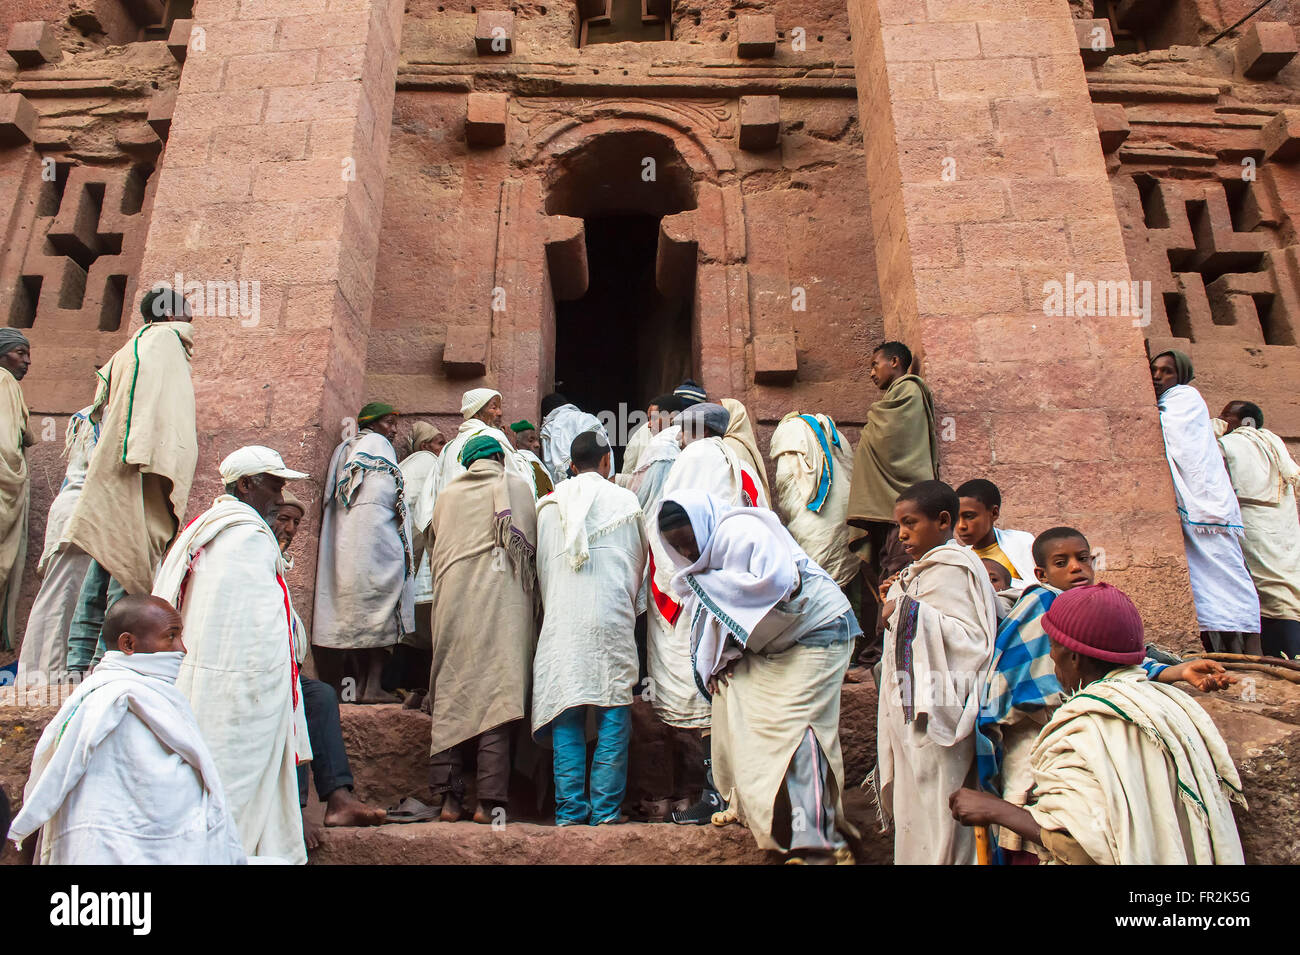 Pilgrims with the traditional white shawl attending a ceremony, Bete Medhane Alem church, Lalibela, Ethiopia - Stock Image